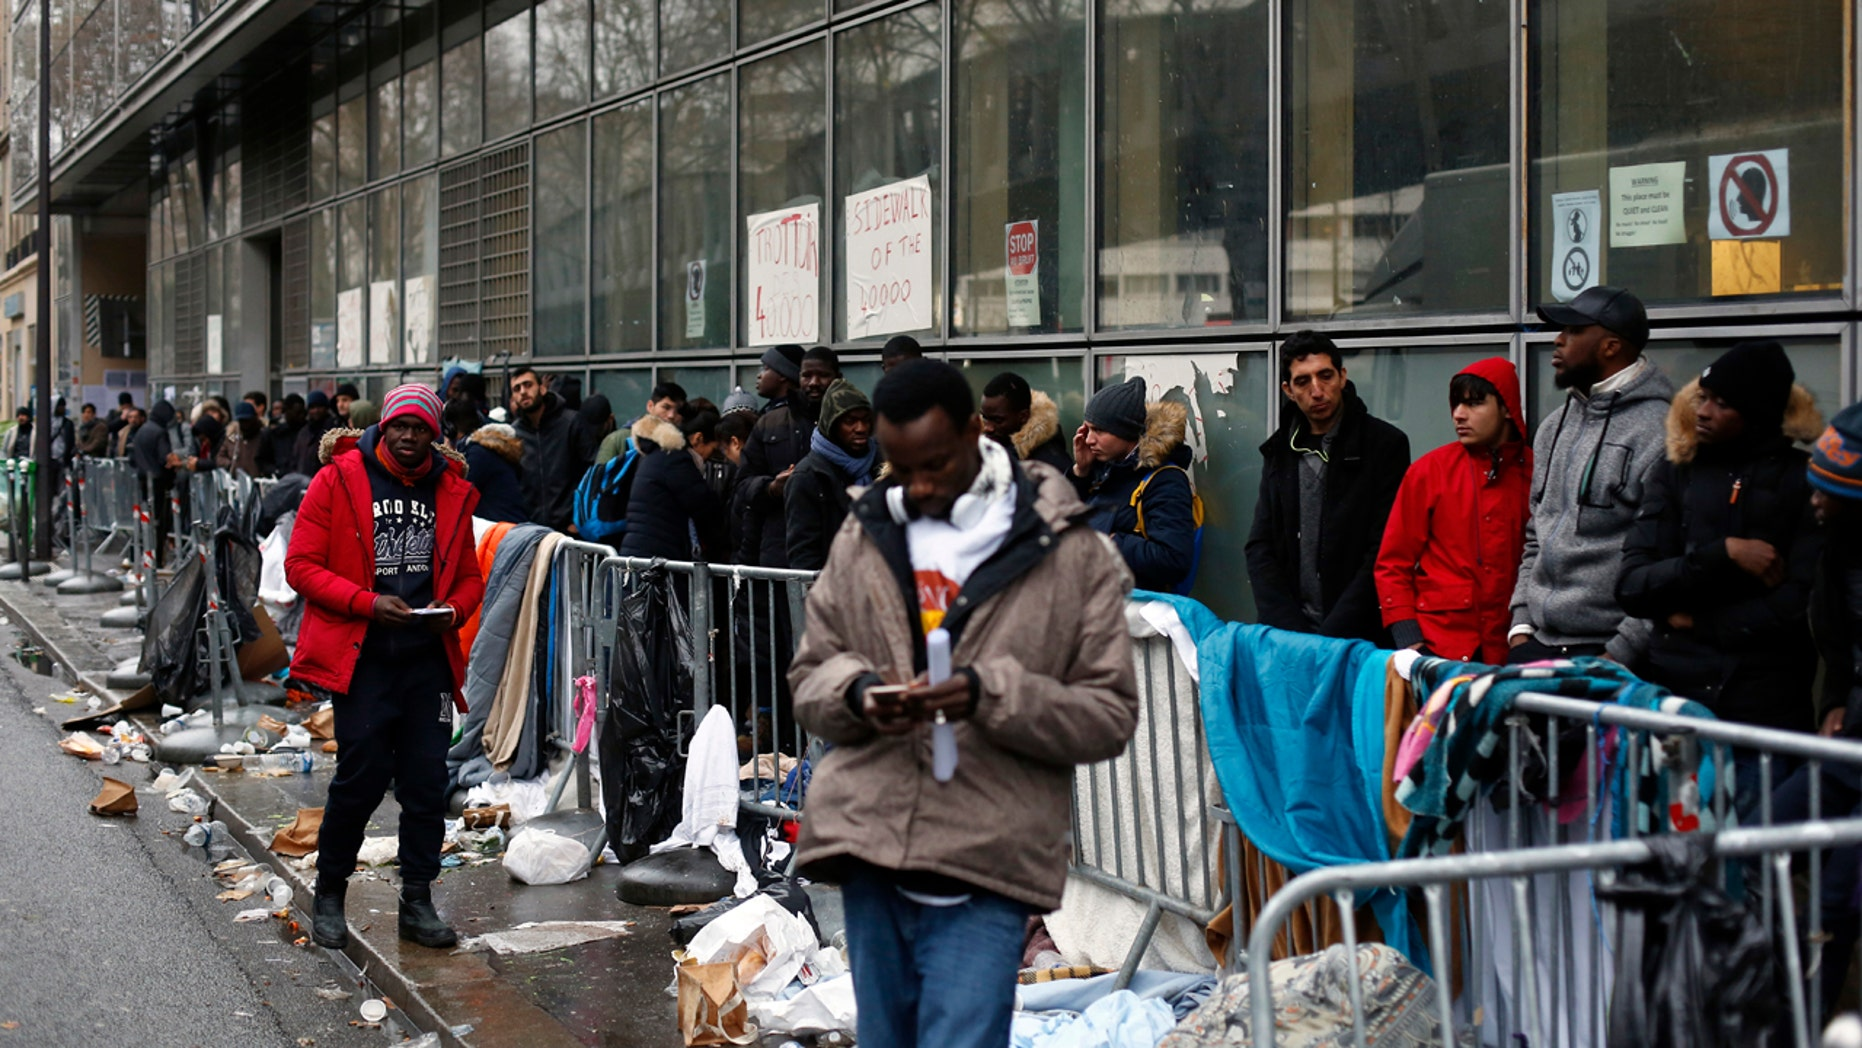 FILE - In this Dec.21, 2017 file photo, migrants queue outside a facility to apply for asylum, in Paris. French President Emmanuel Macron's government presents its first big immigration bill at Cabinet meeting Wednesday Feb.21, 2018. The government says the bill aims at accelerating expulsion of people who don't qualify for asylum and offering better conditions for those who are allowed to stay in the country. (AP Photo/Thibault Camus, File)